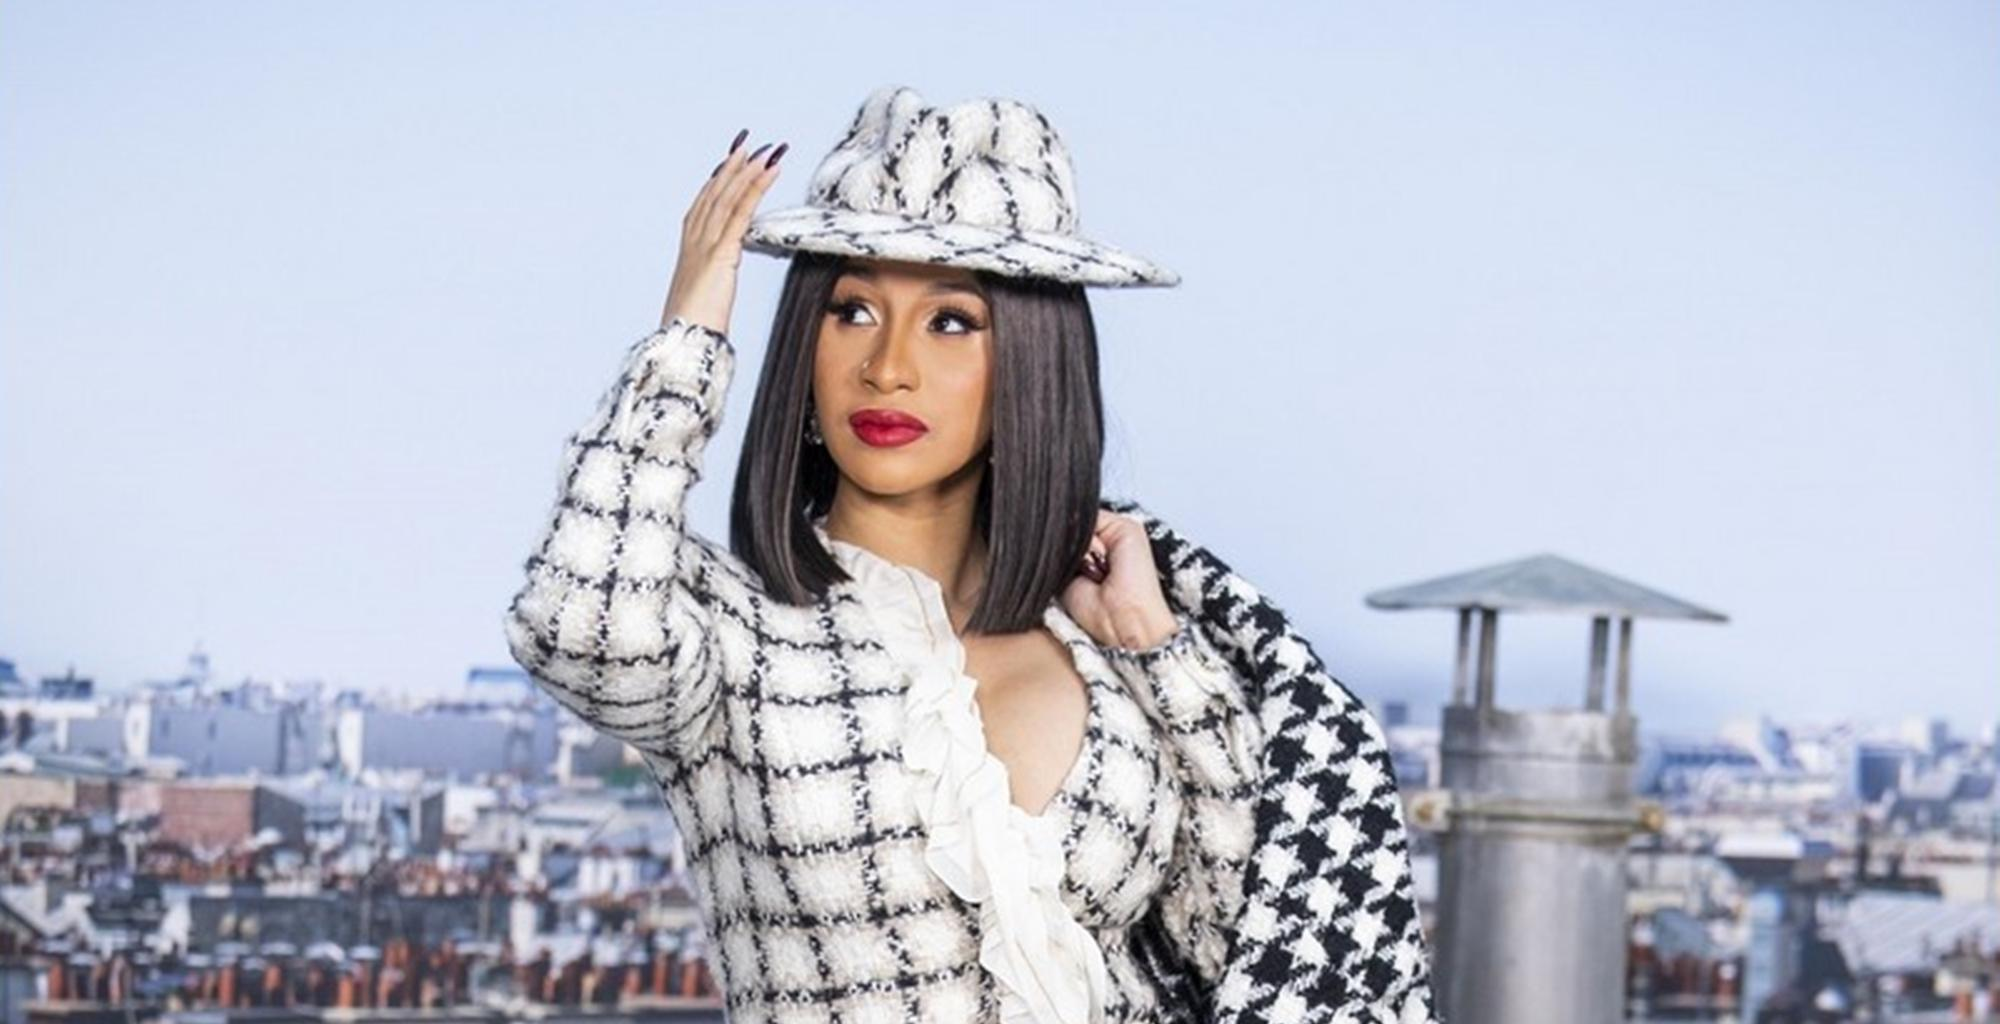 Cardi B Reveals The Very Private Treat She Gave Offset In New Photo For The Titanic Diamond Ring He Gave Her For Her Birthday